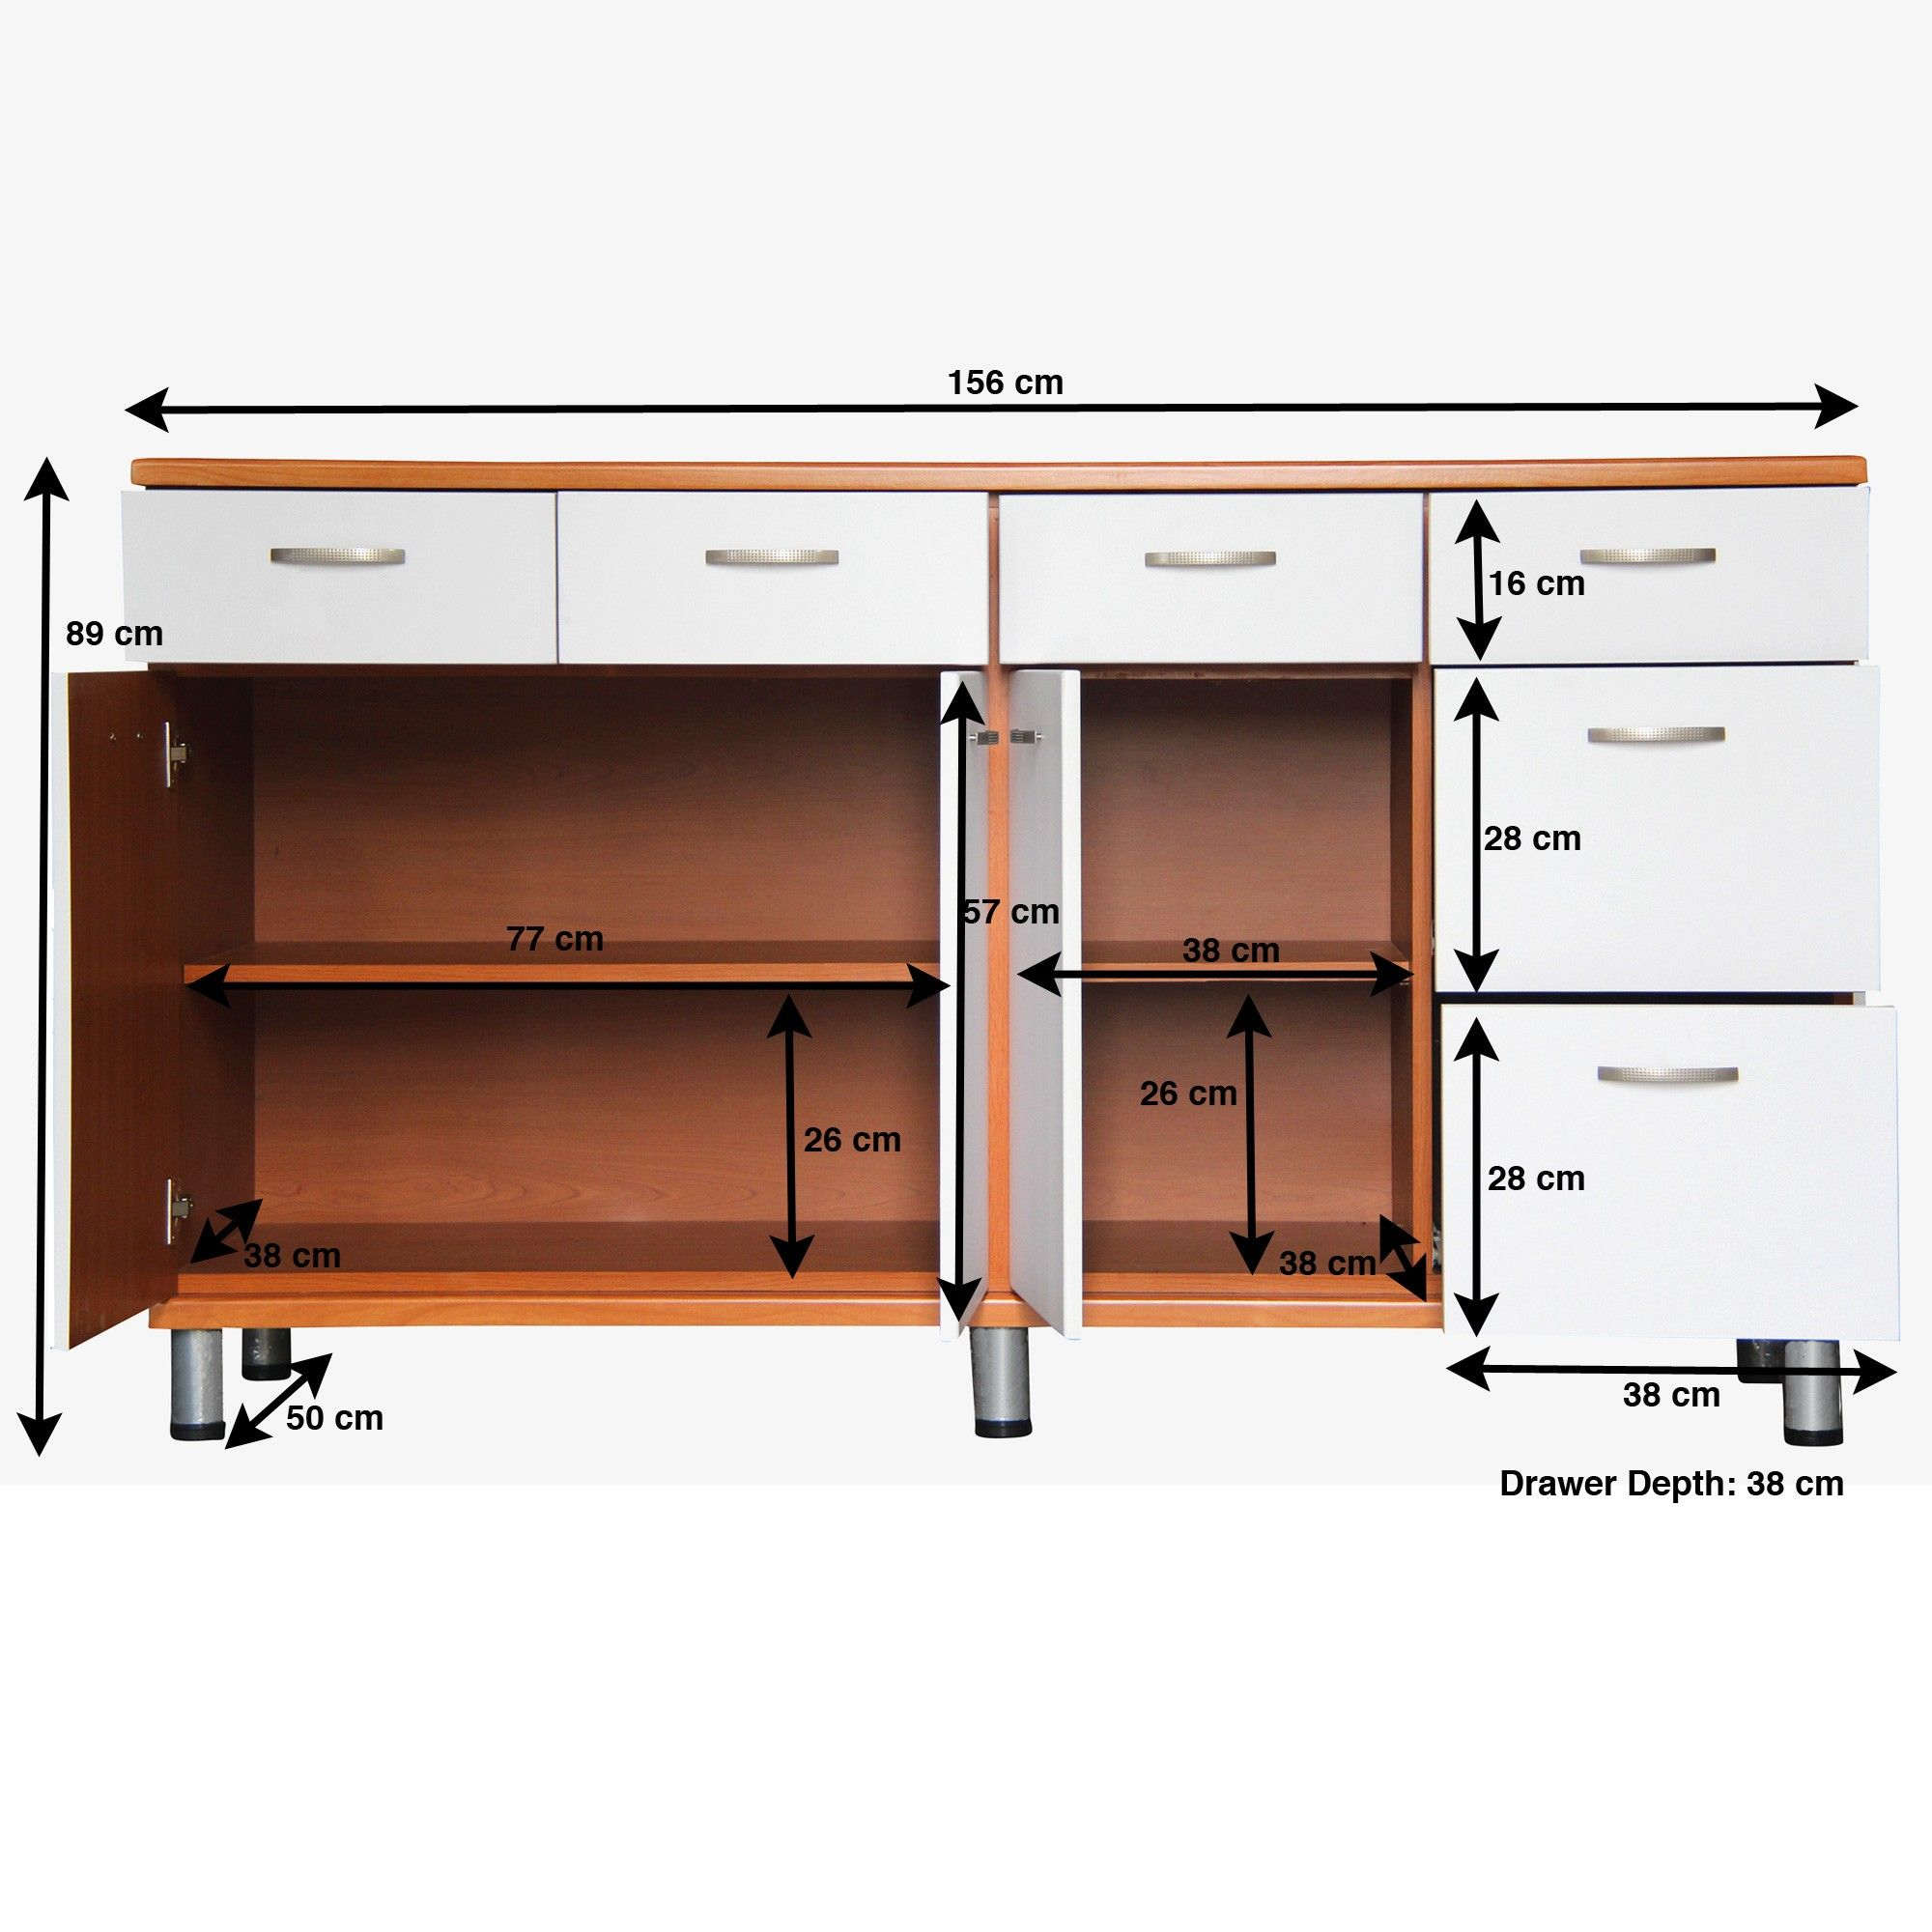 Kitchen 10 Most Outstanding Small Kitchen Cabinet Sizes From Kitchen Cabinets Depth